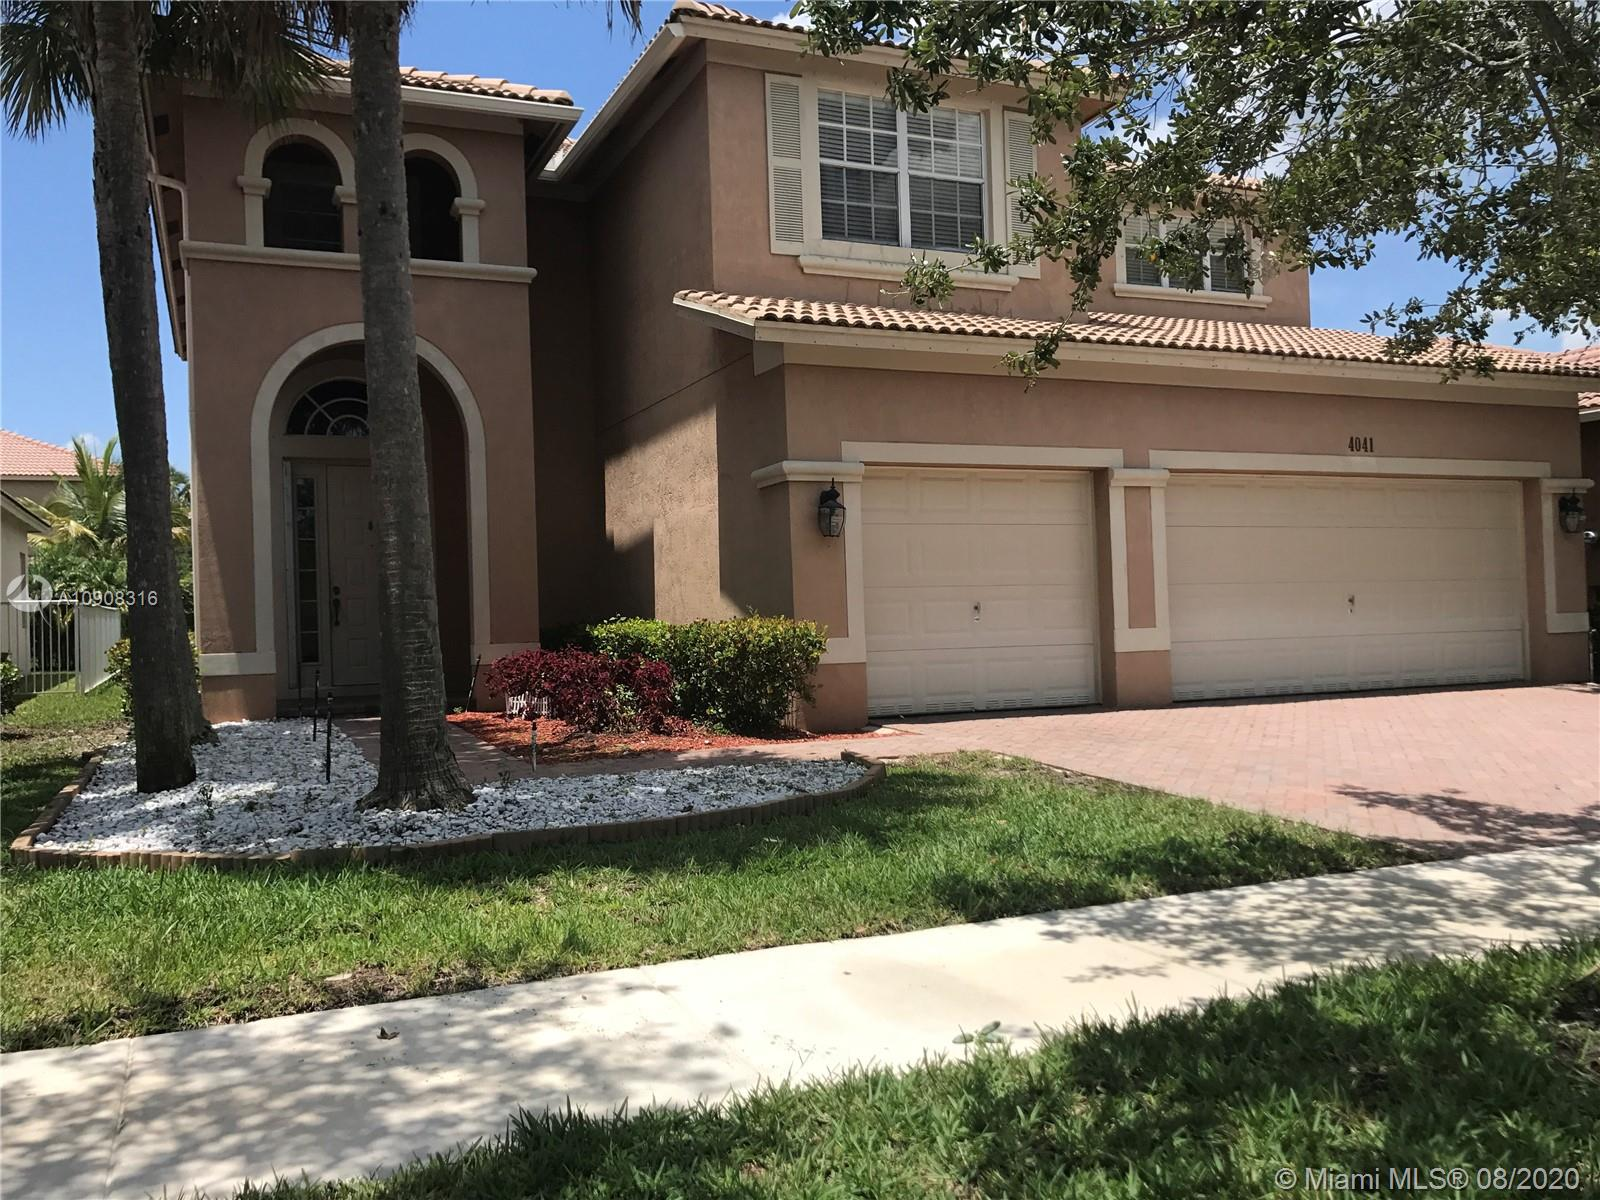 Weston - 4041 W Whitewater Ave, Weston, FL 33332